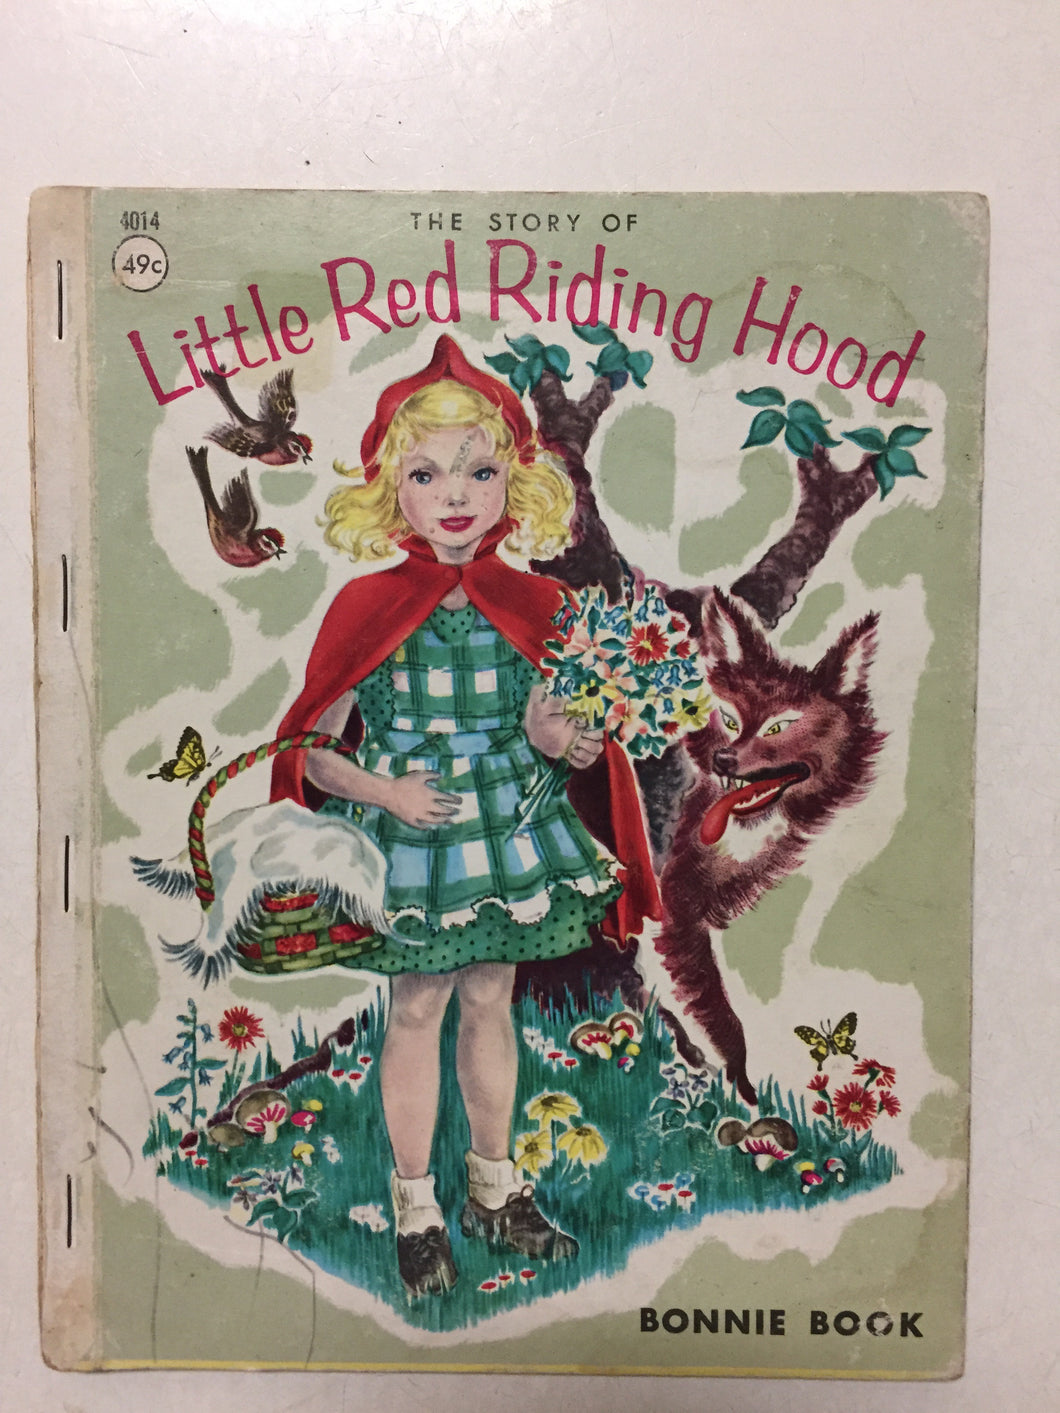 The Story of Little Red Riding Hood